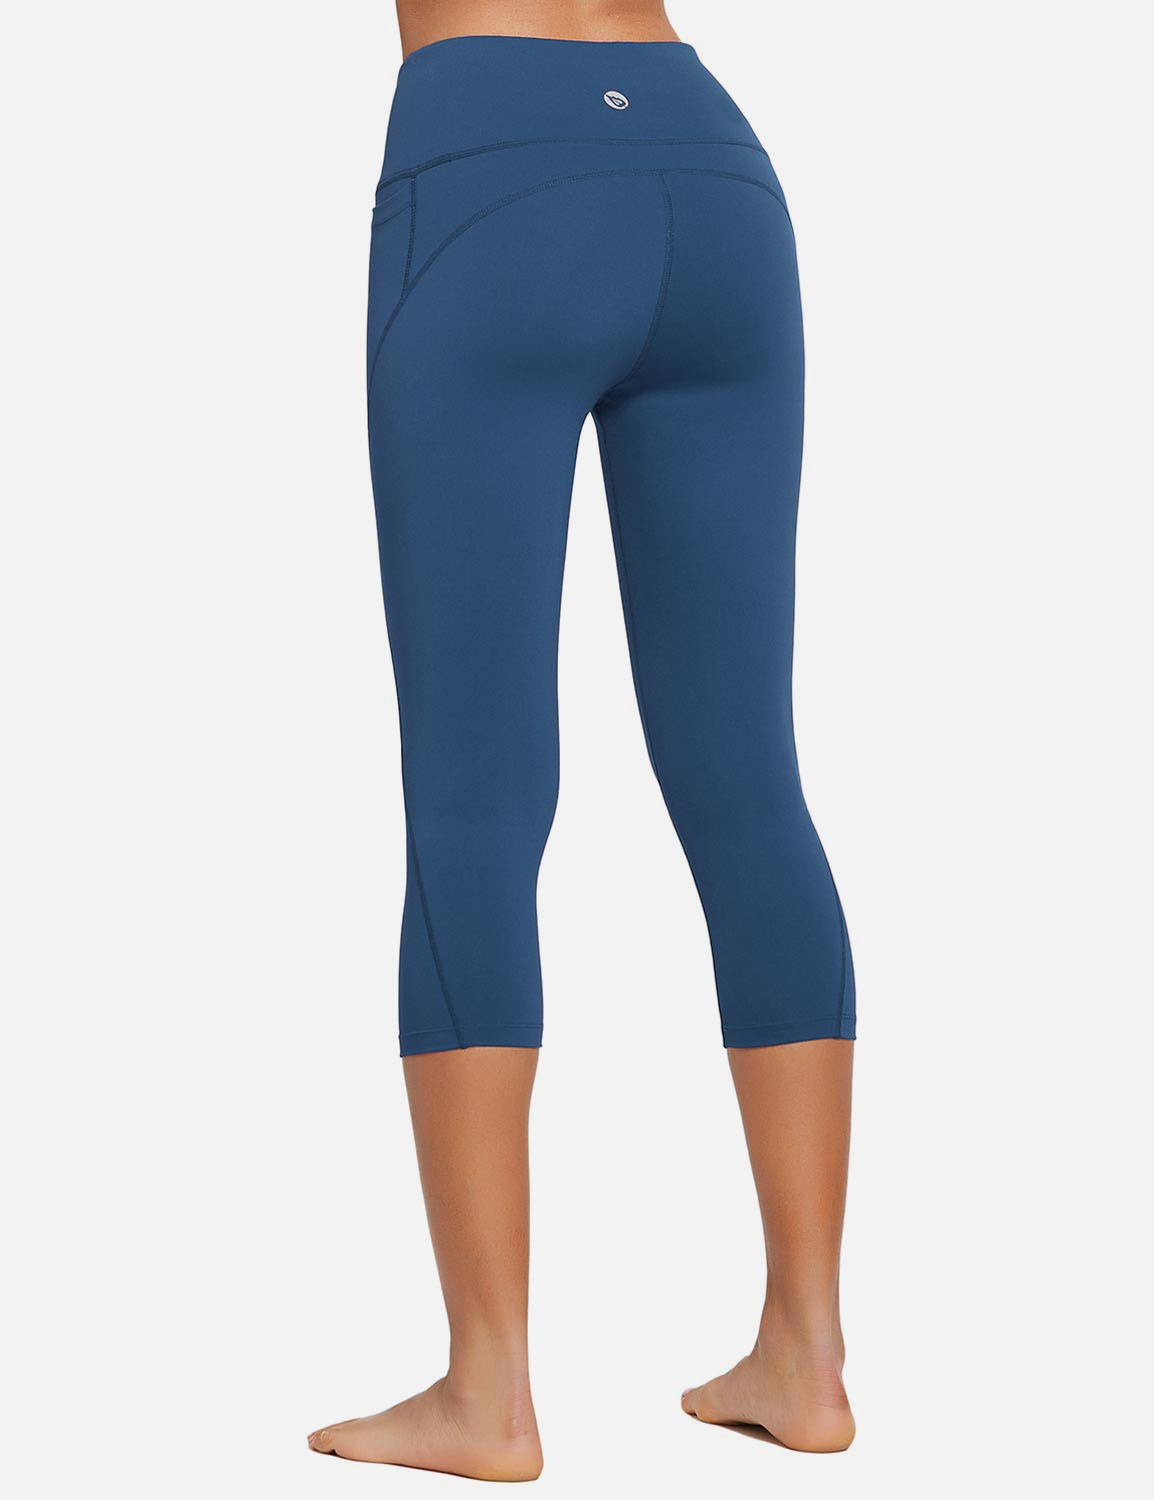 Baleaf Womens High Rise Bottom Contour Pocketed Capris Denim Blue Back